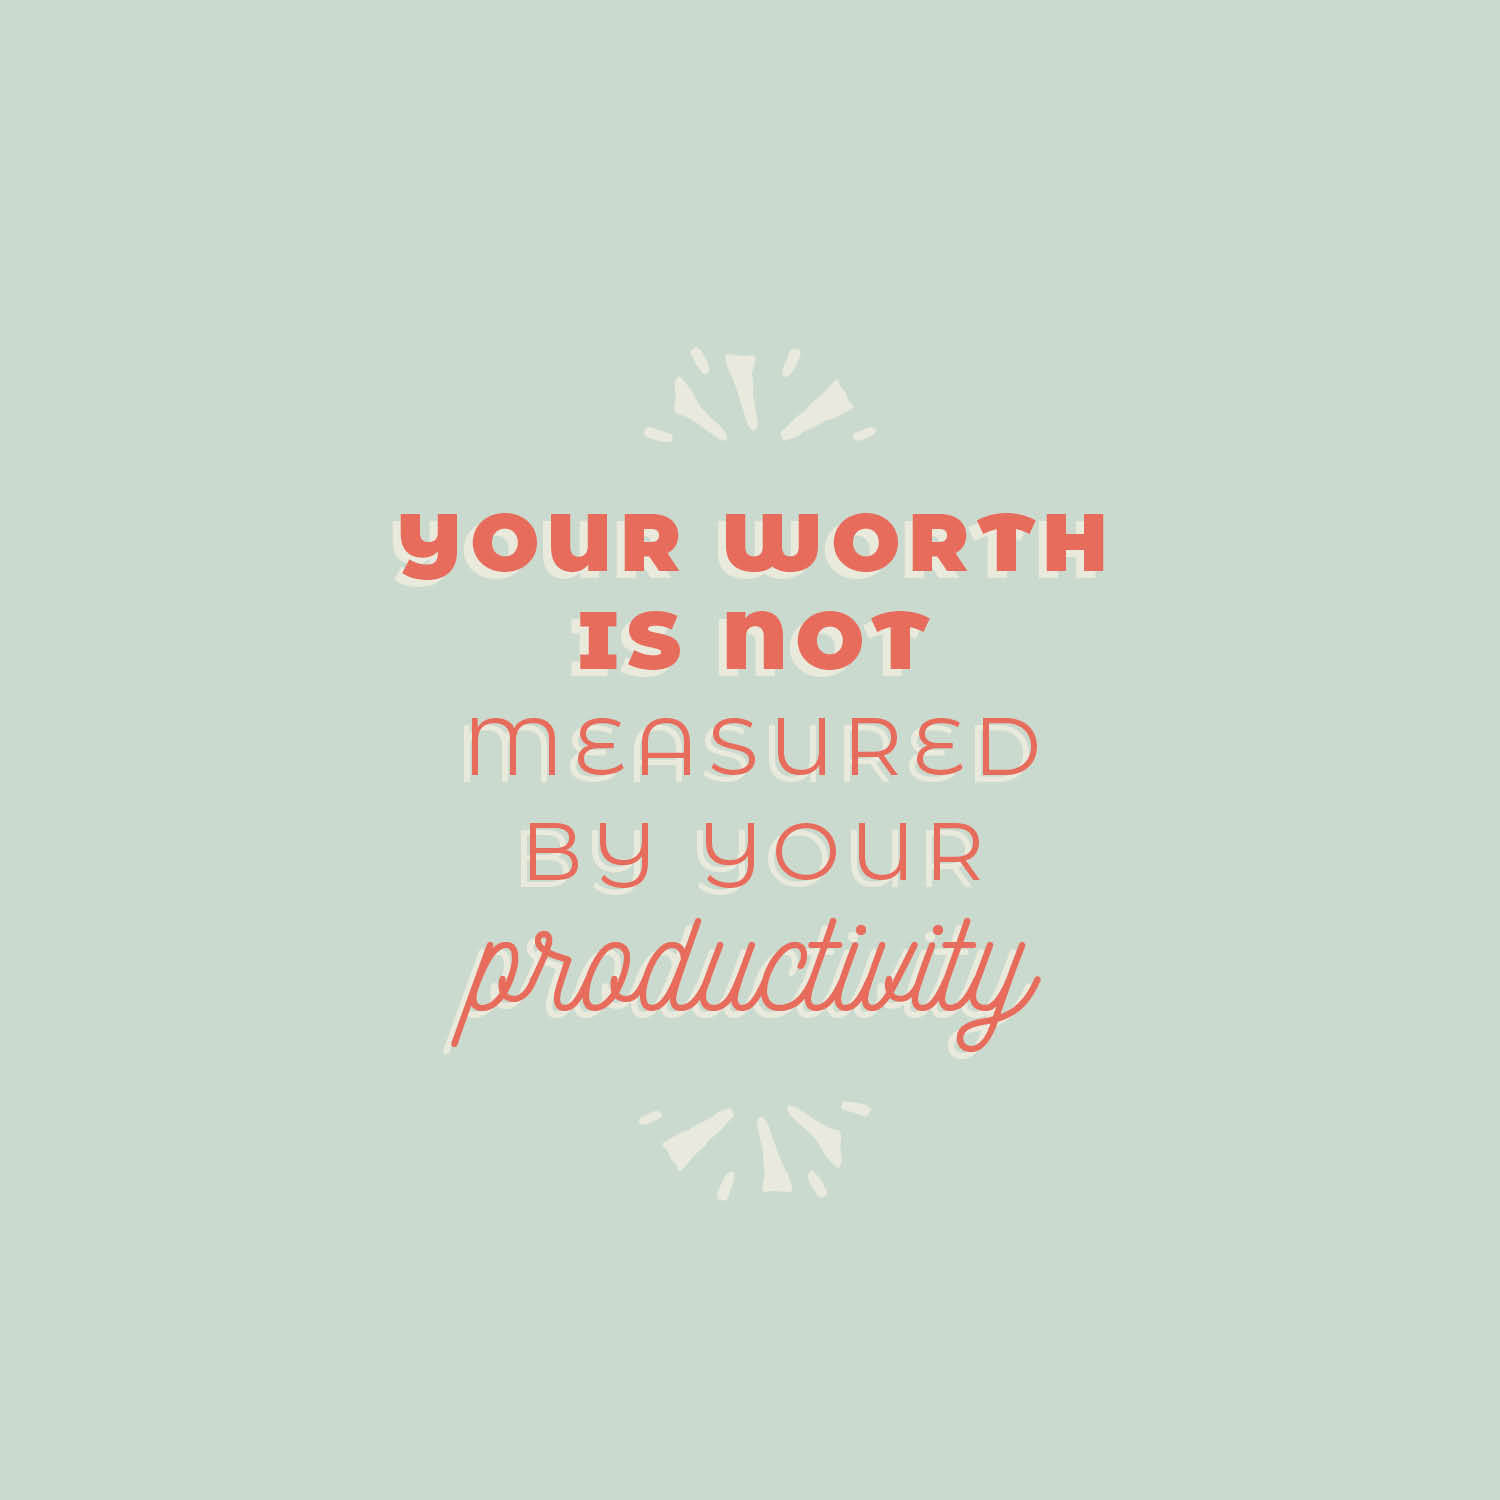 happy friyay free phone wallpaper your worth is not measured by your productivity 2